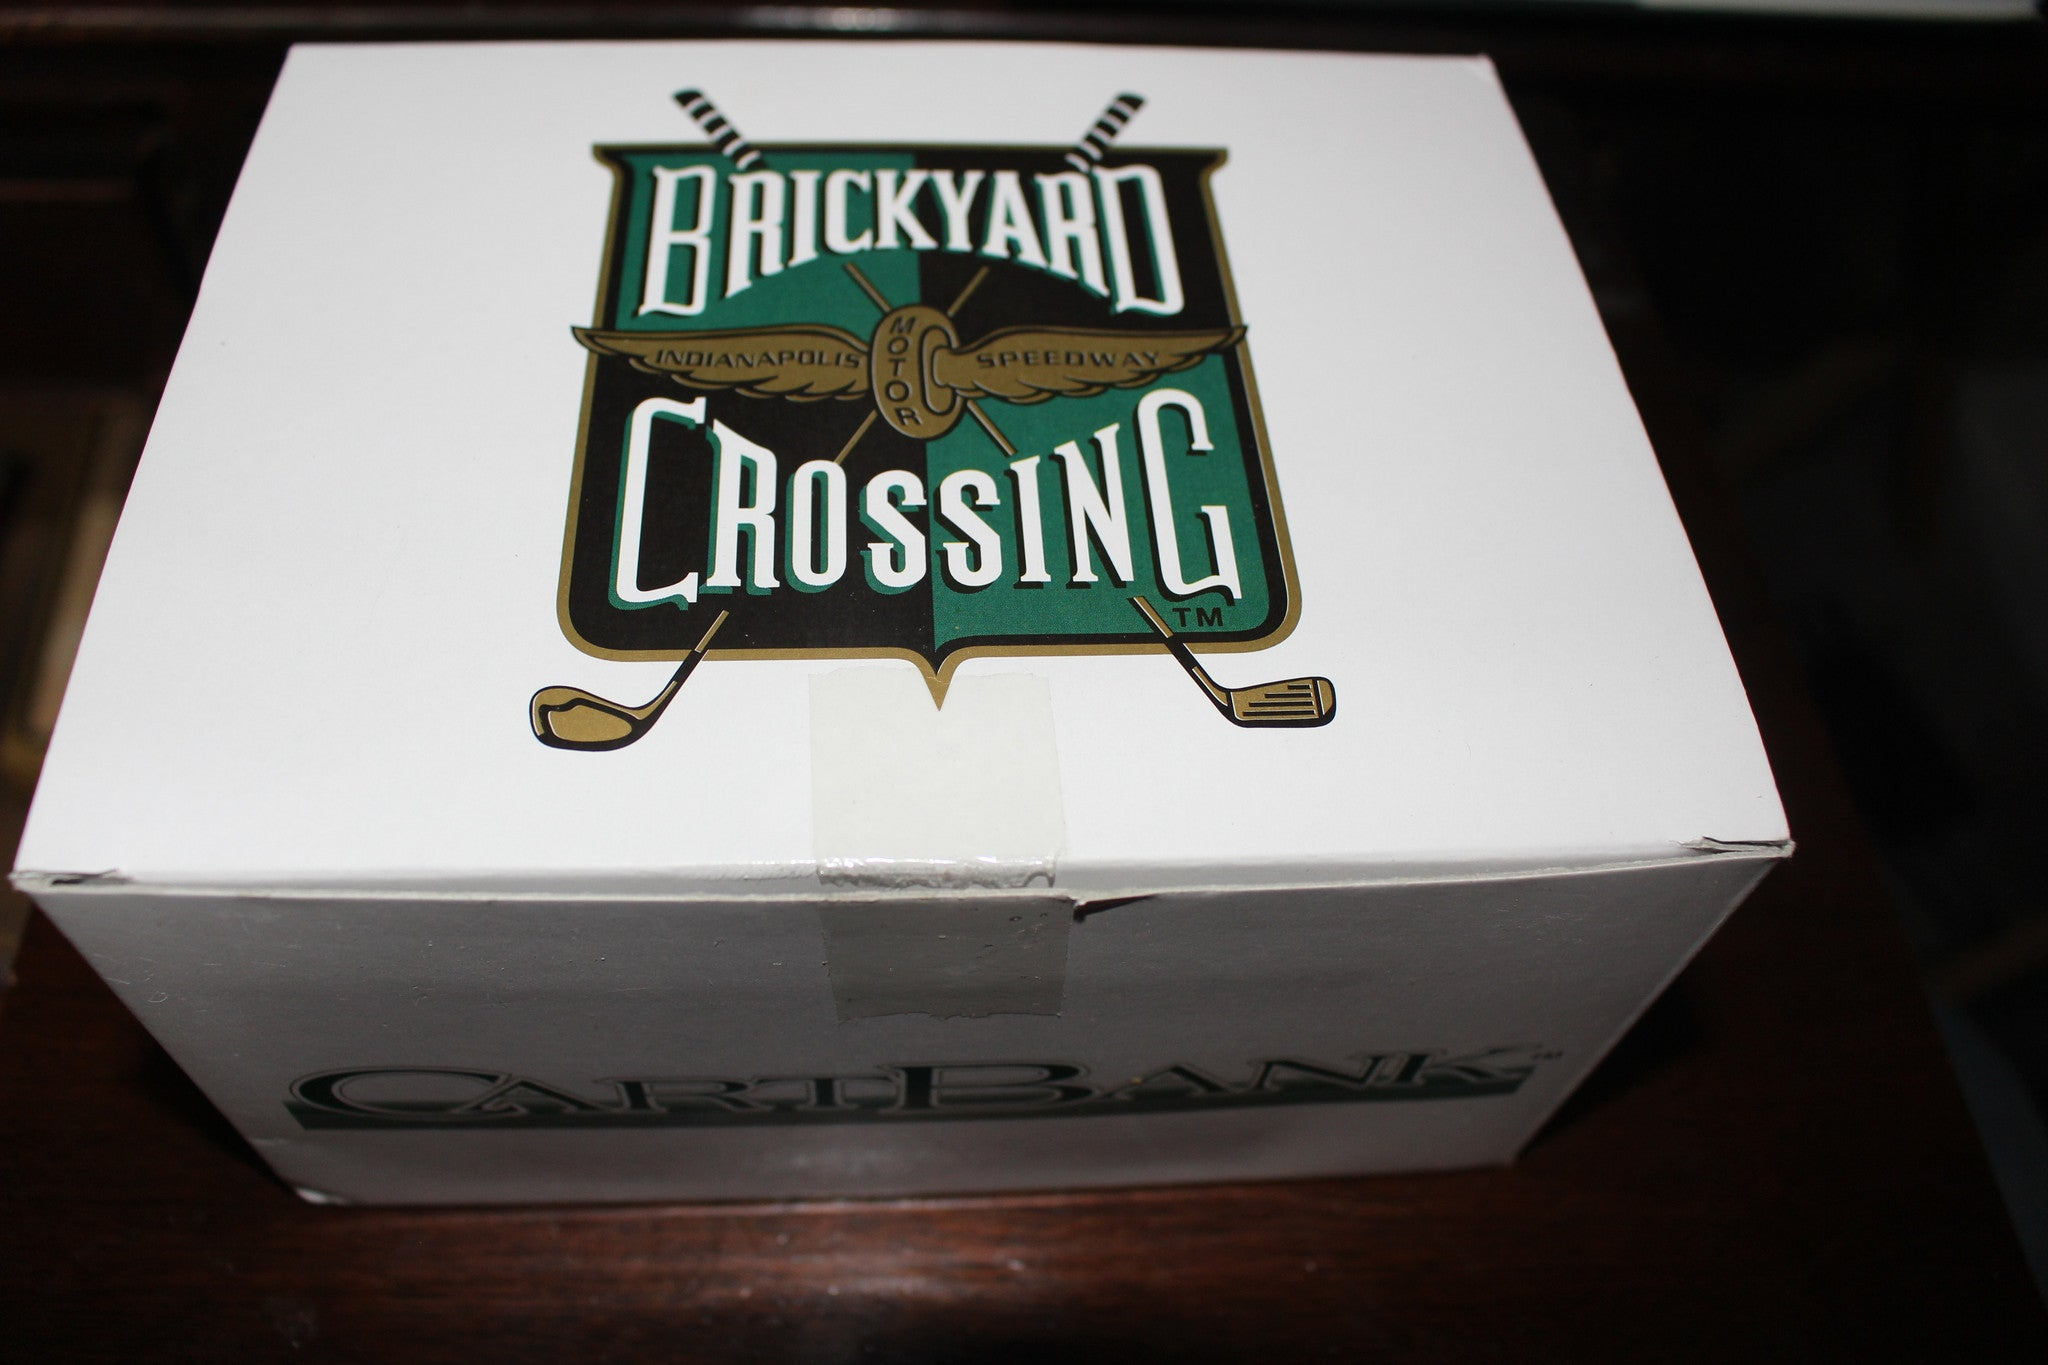 Brickyard Crossing Diecast Golf Cart Bank, New in Box!  1:16 Scale - Vintage Indy Sports